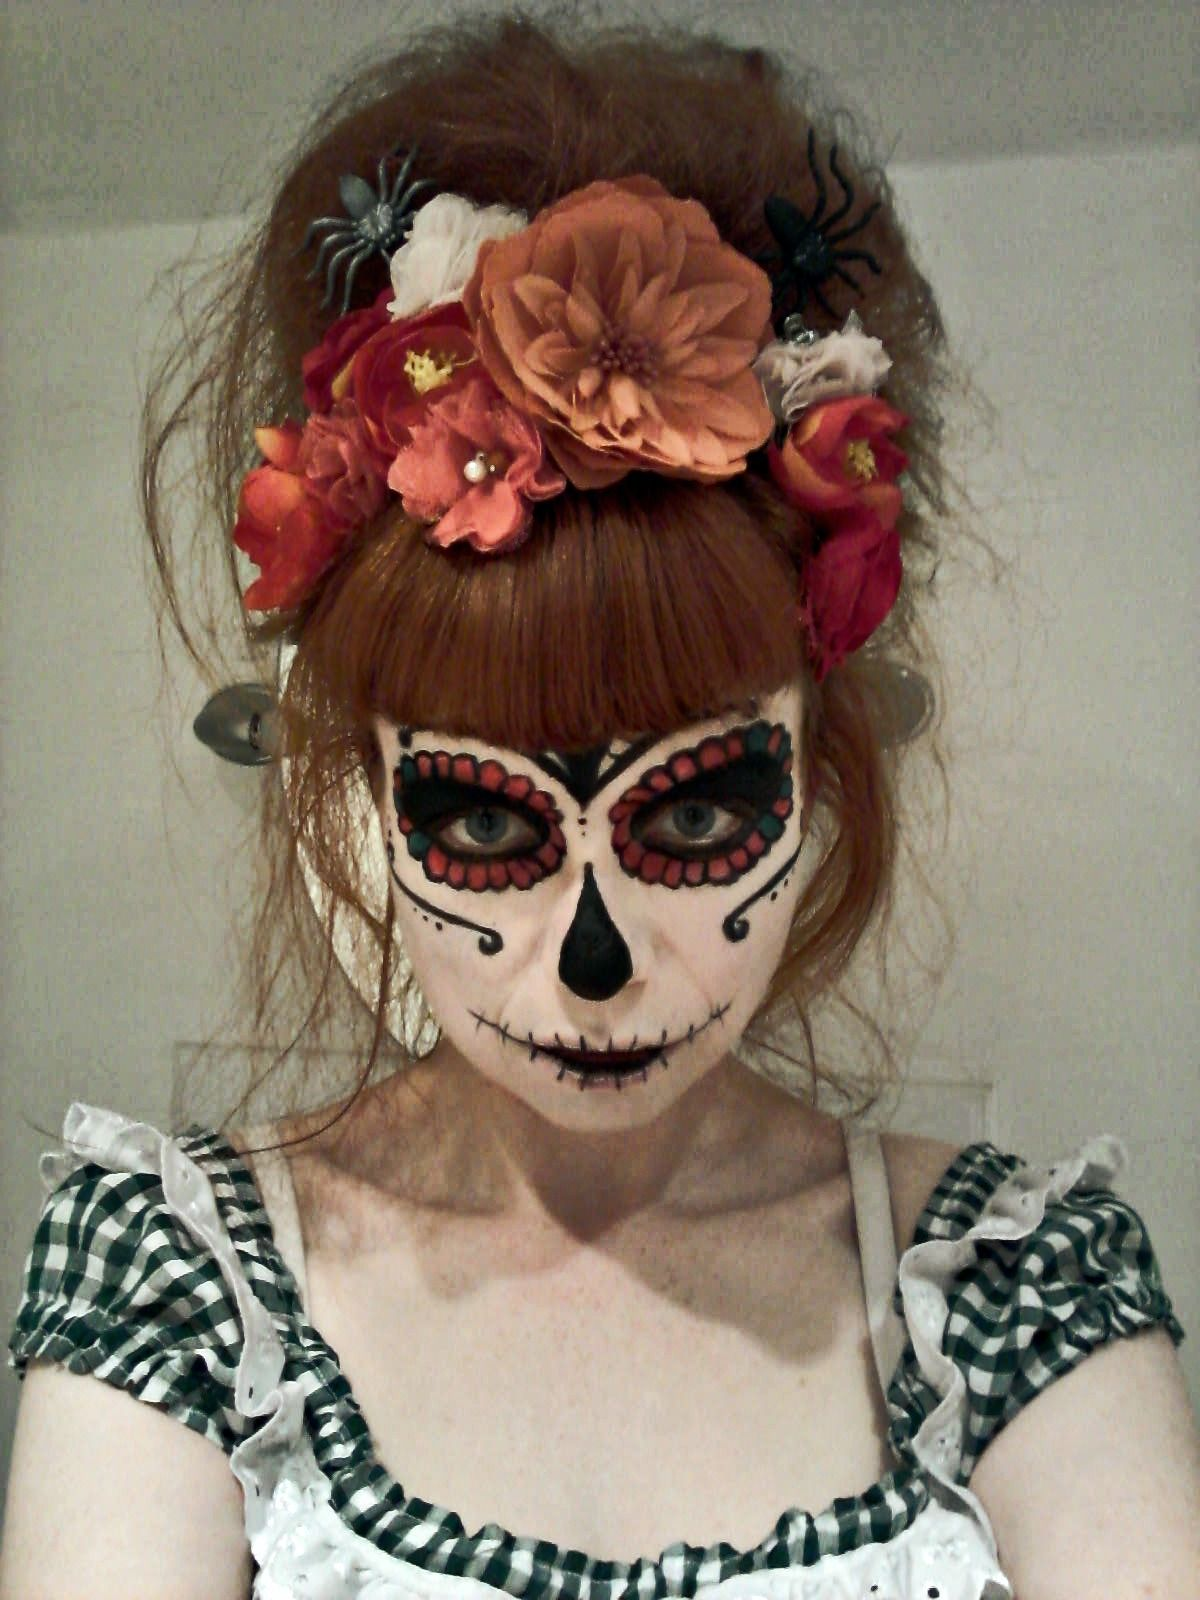 Halloween Day Of The Dead Sugar Skull Look Makeup And Hair By Flamingo Amy Www Flamingoamy Co Uk Sugar Skull Makeup Sugar Skull Halloween